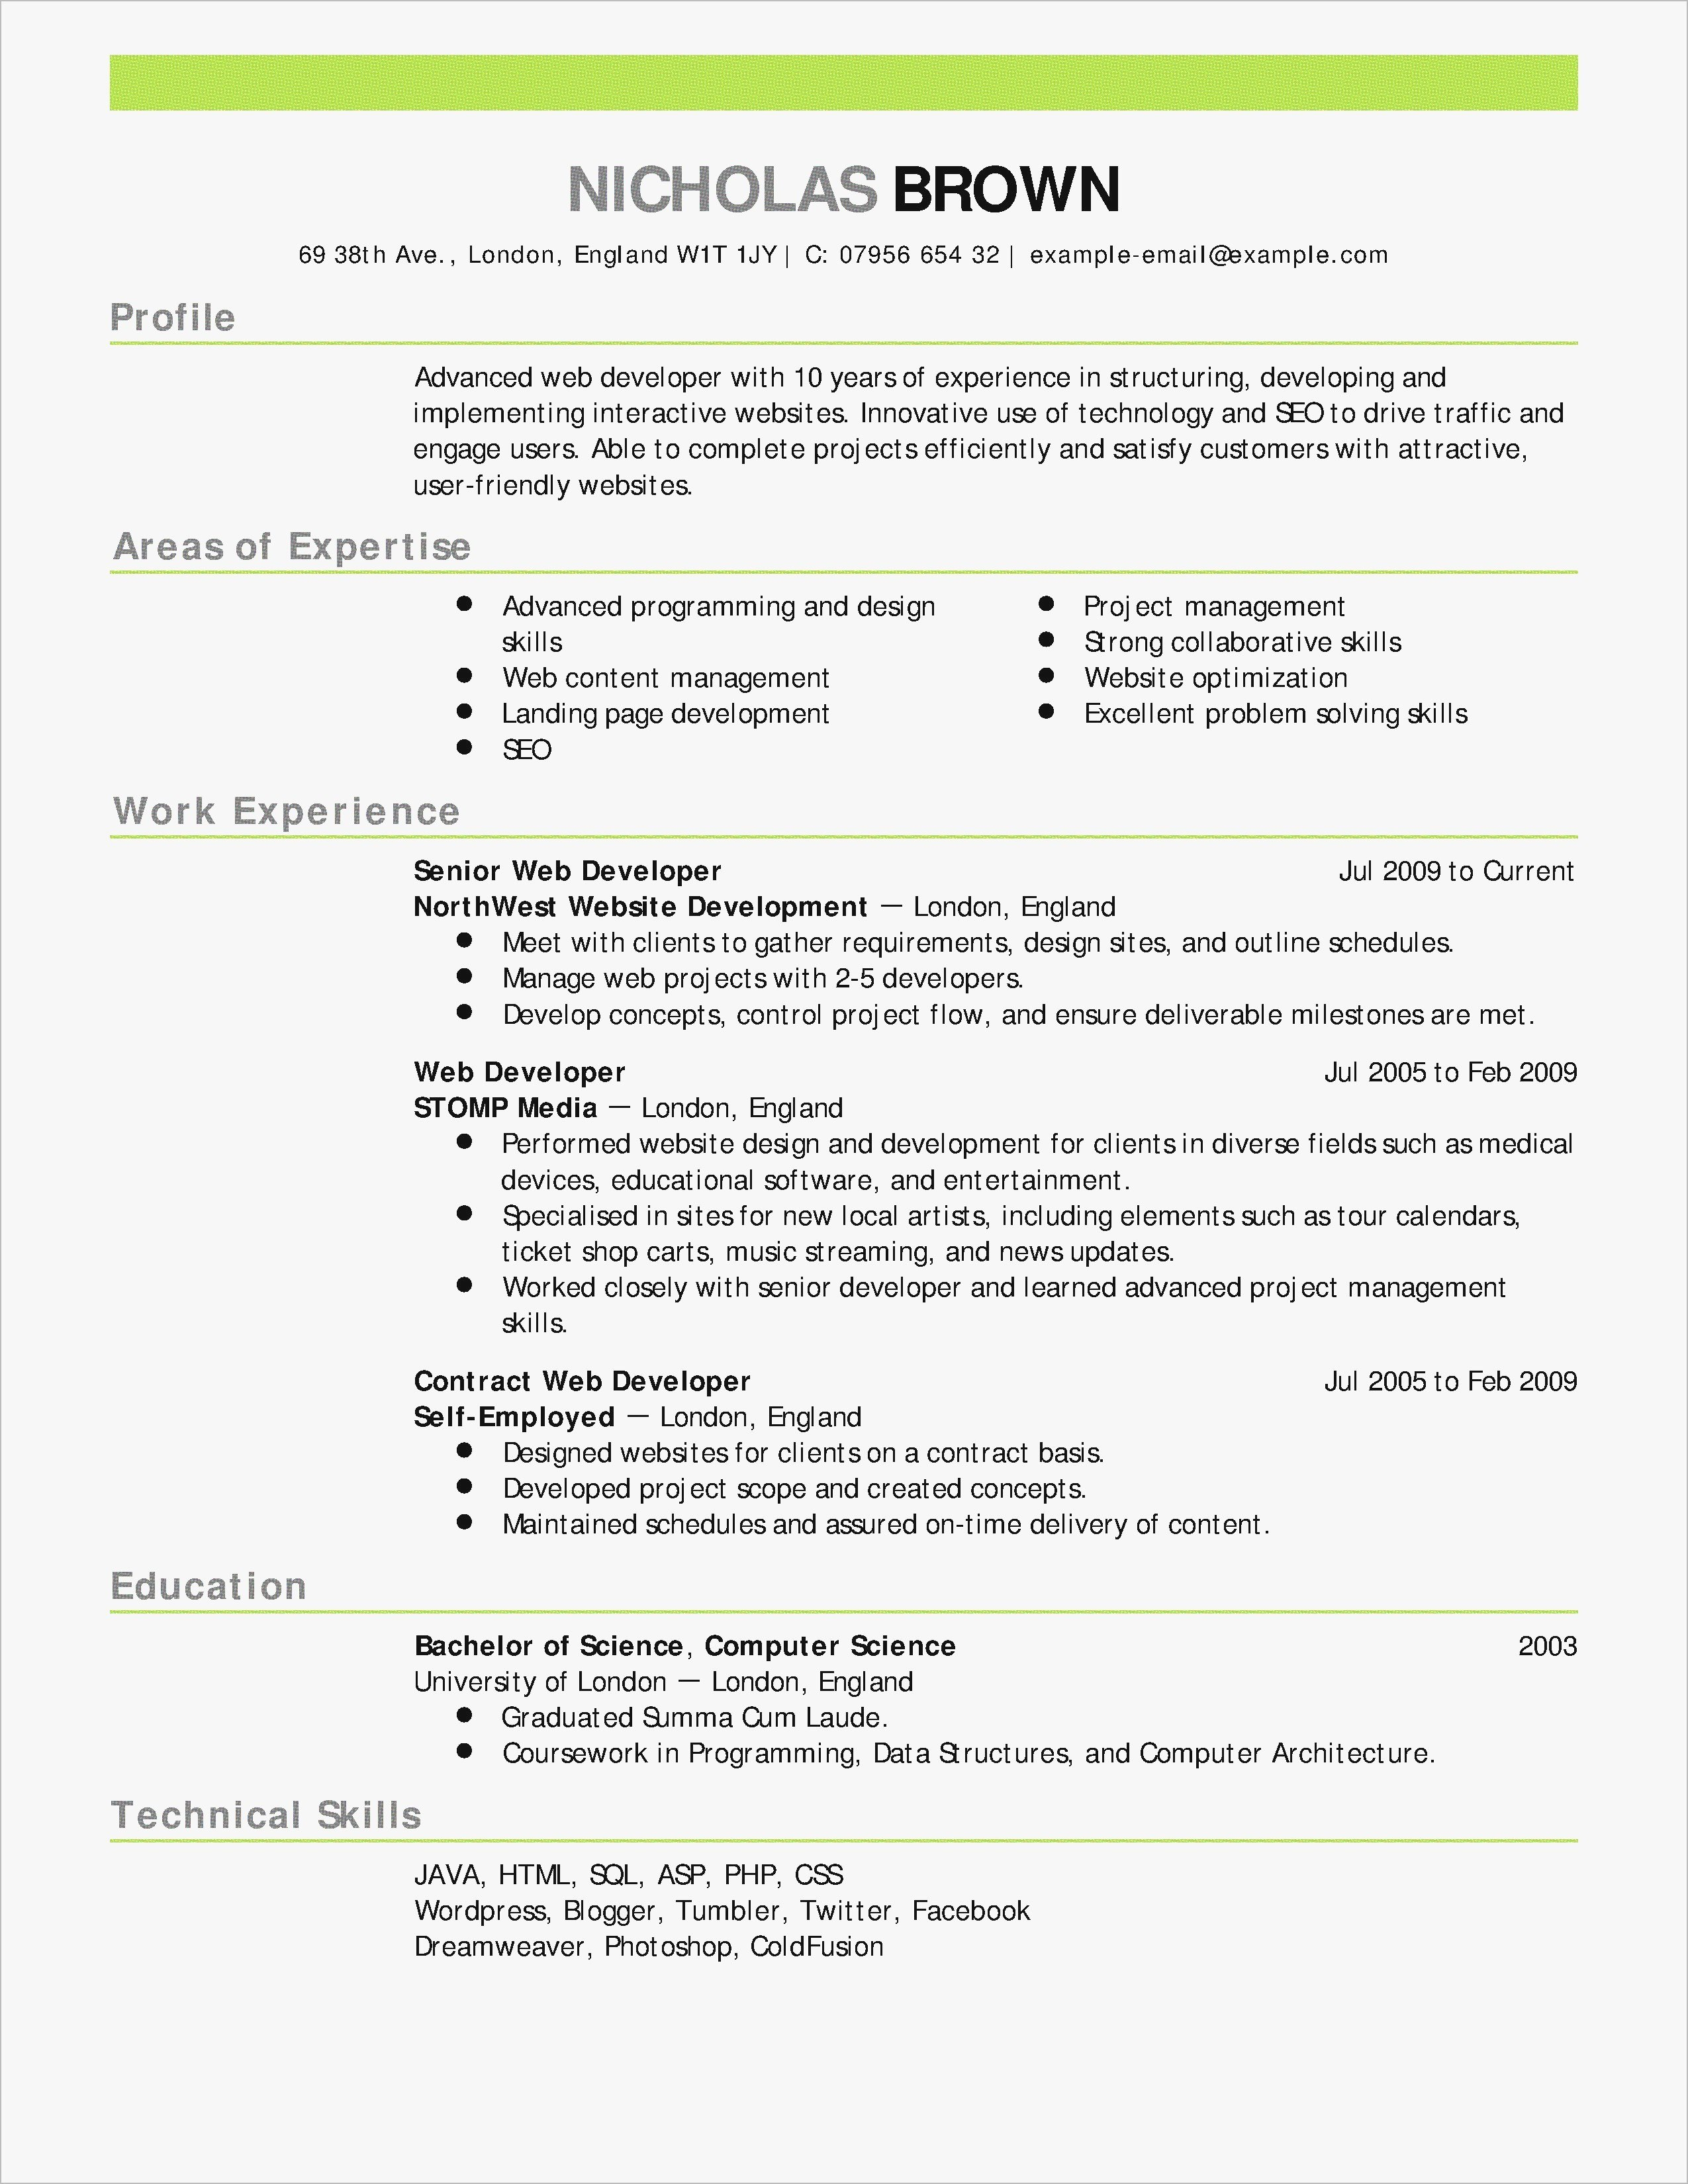 Graphic Design Proposal Template Awesome Contract Best Of Pertaining To Graphic Design Proposal Template